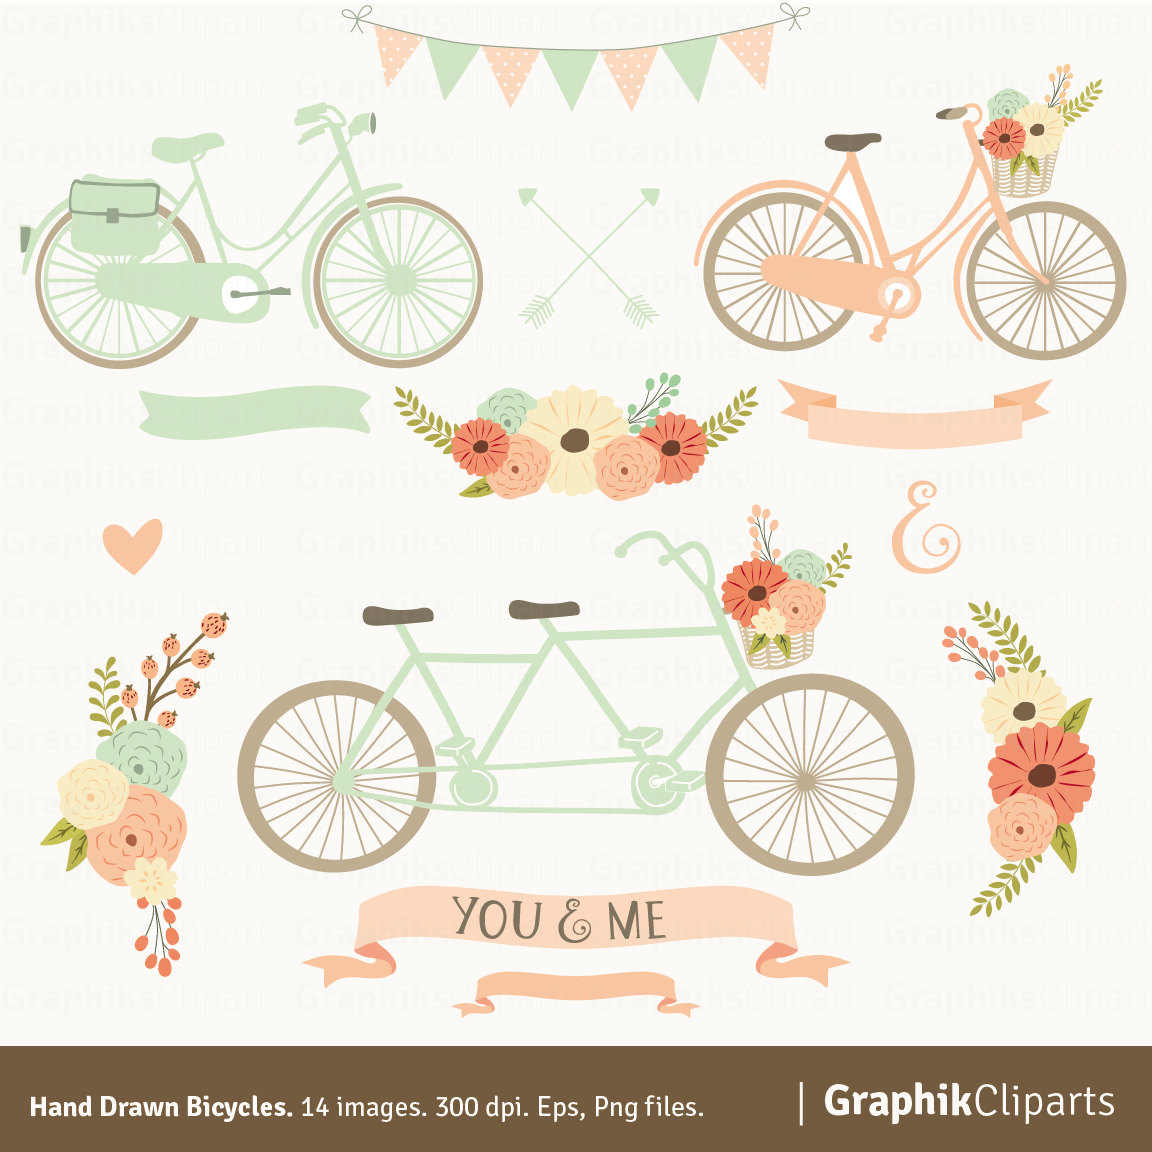 Bike clipart drawn Tandem Bicycle Etsy Bicycles Bicycles